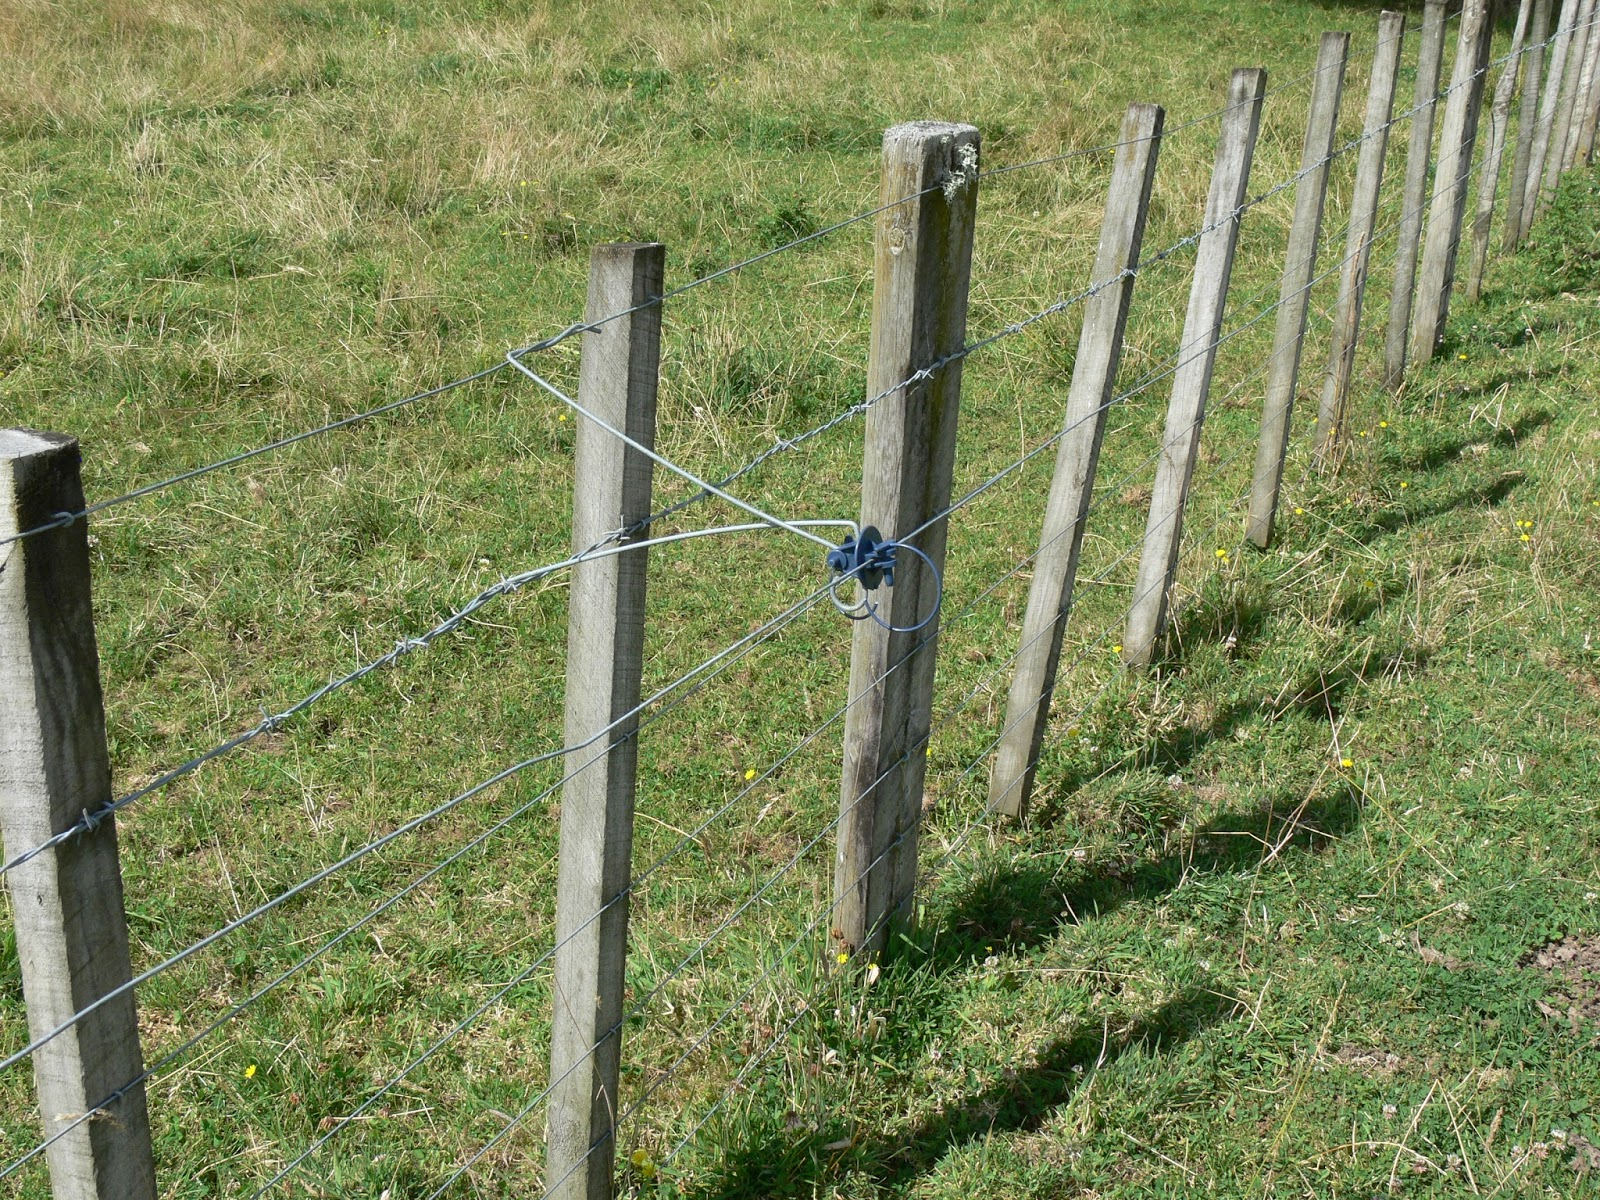 woolshed 1 new zealand farming electric power fencing glossary